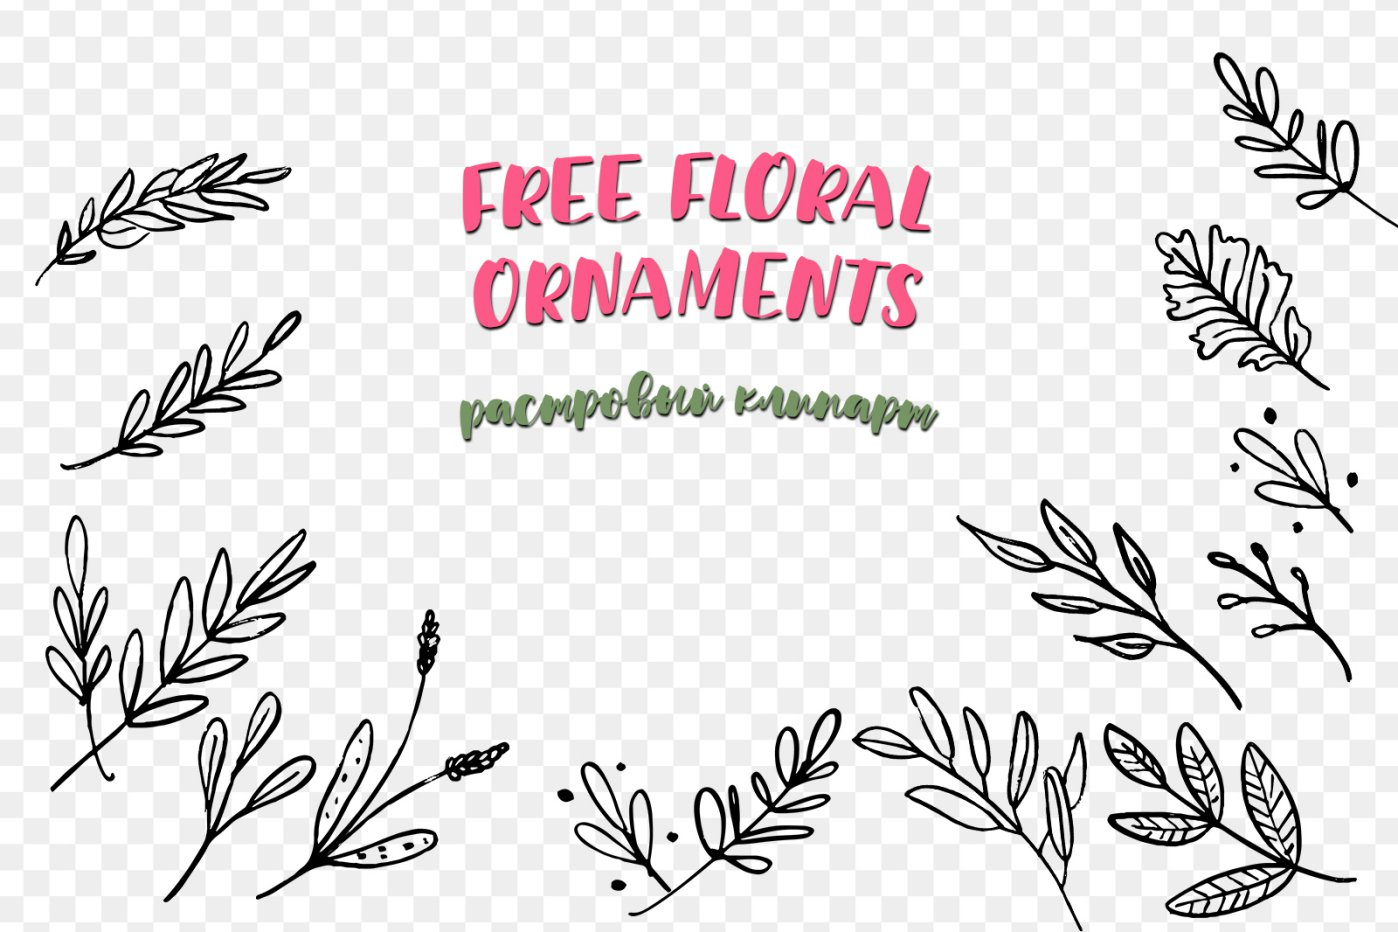 Free Floral Ornaments png